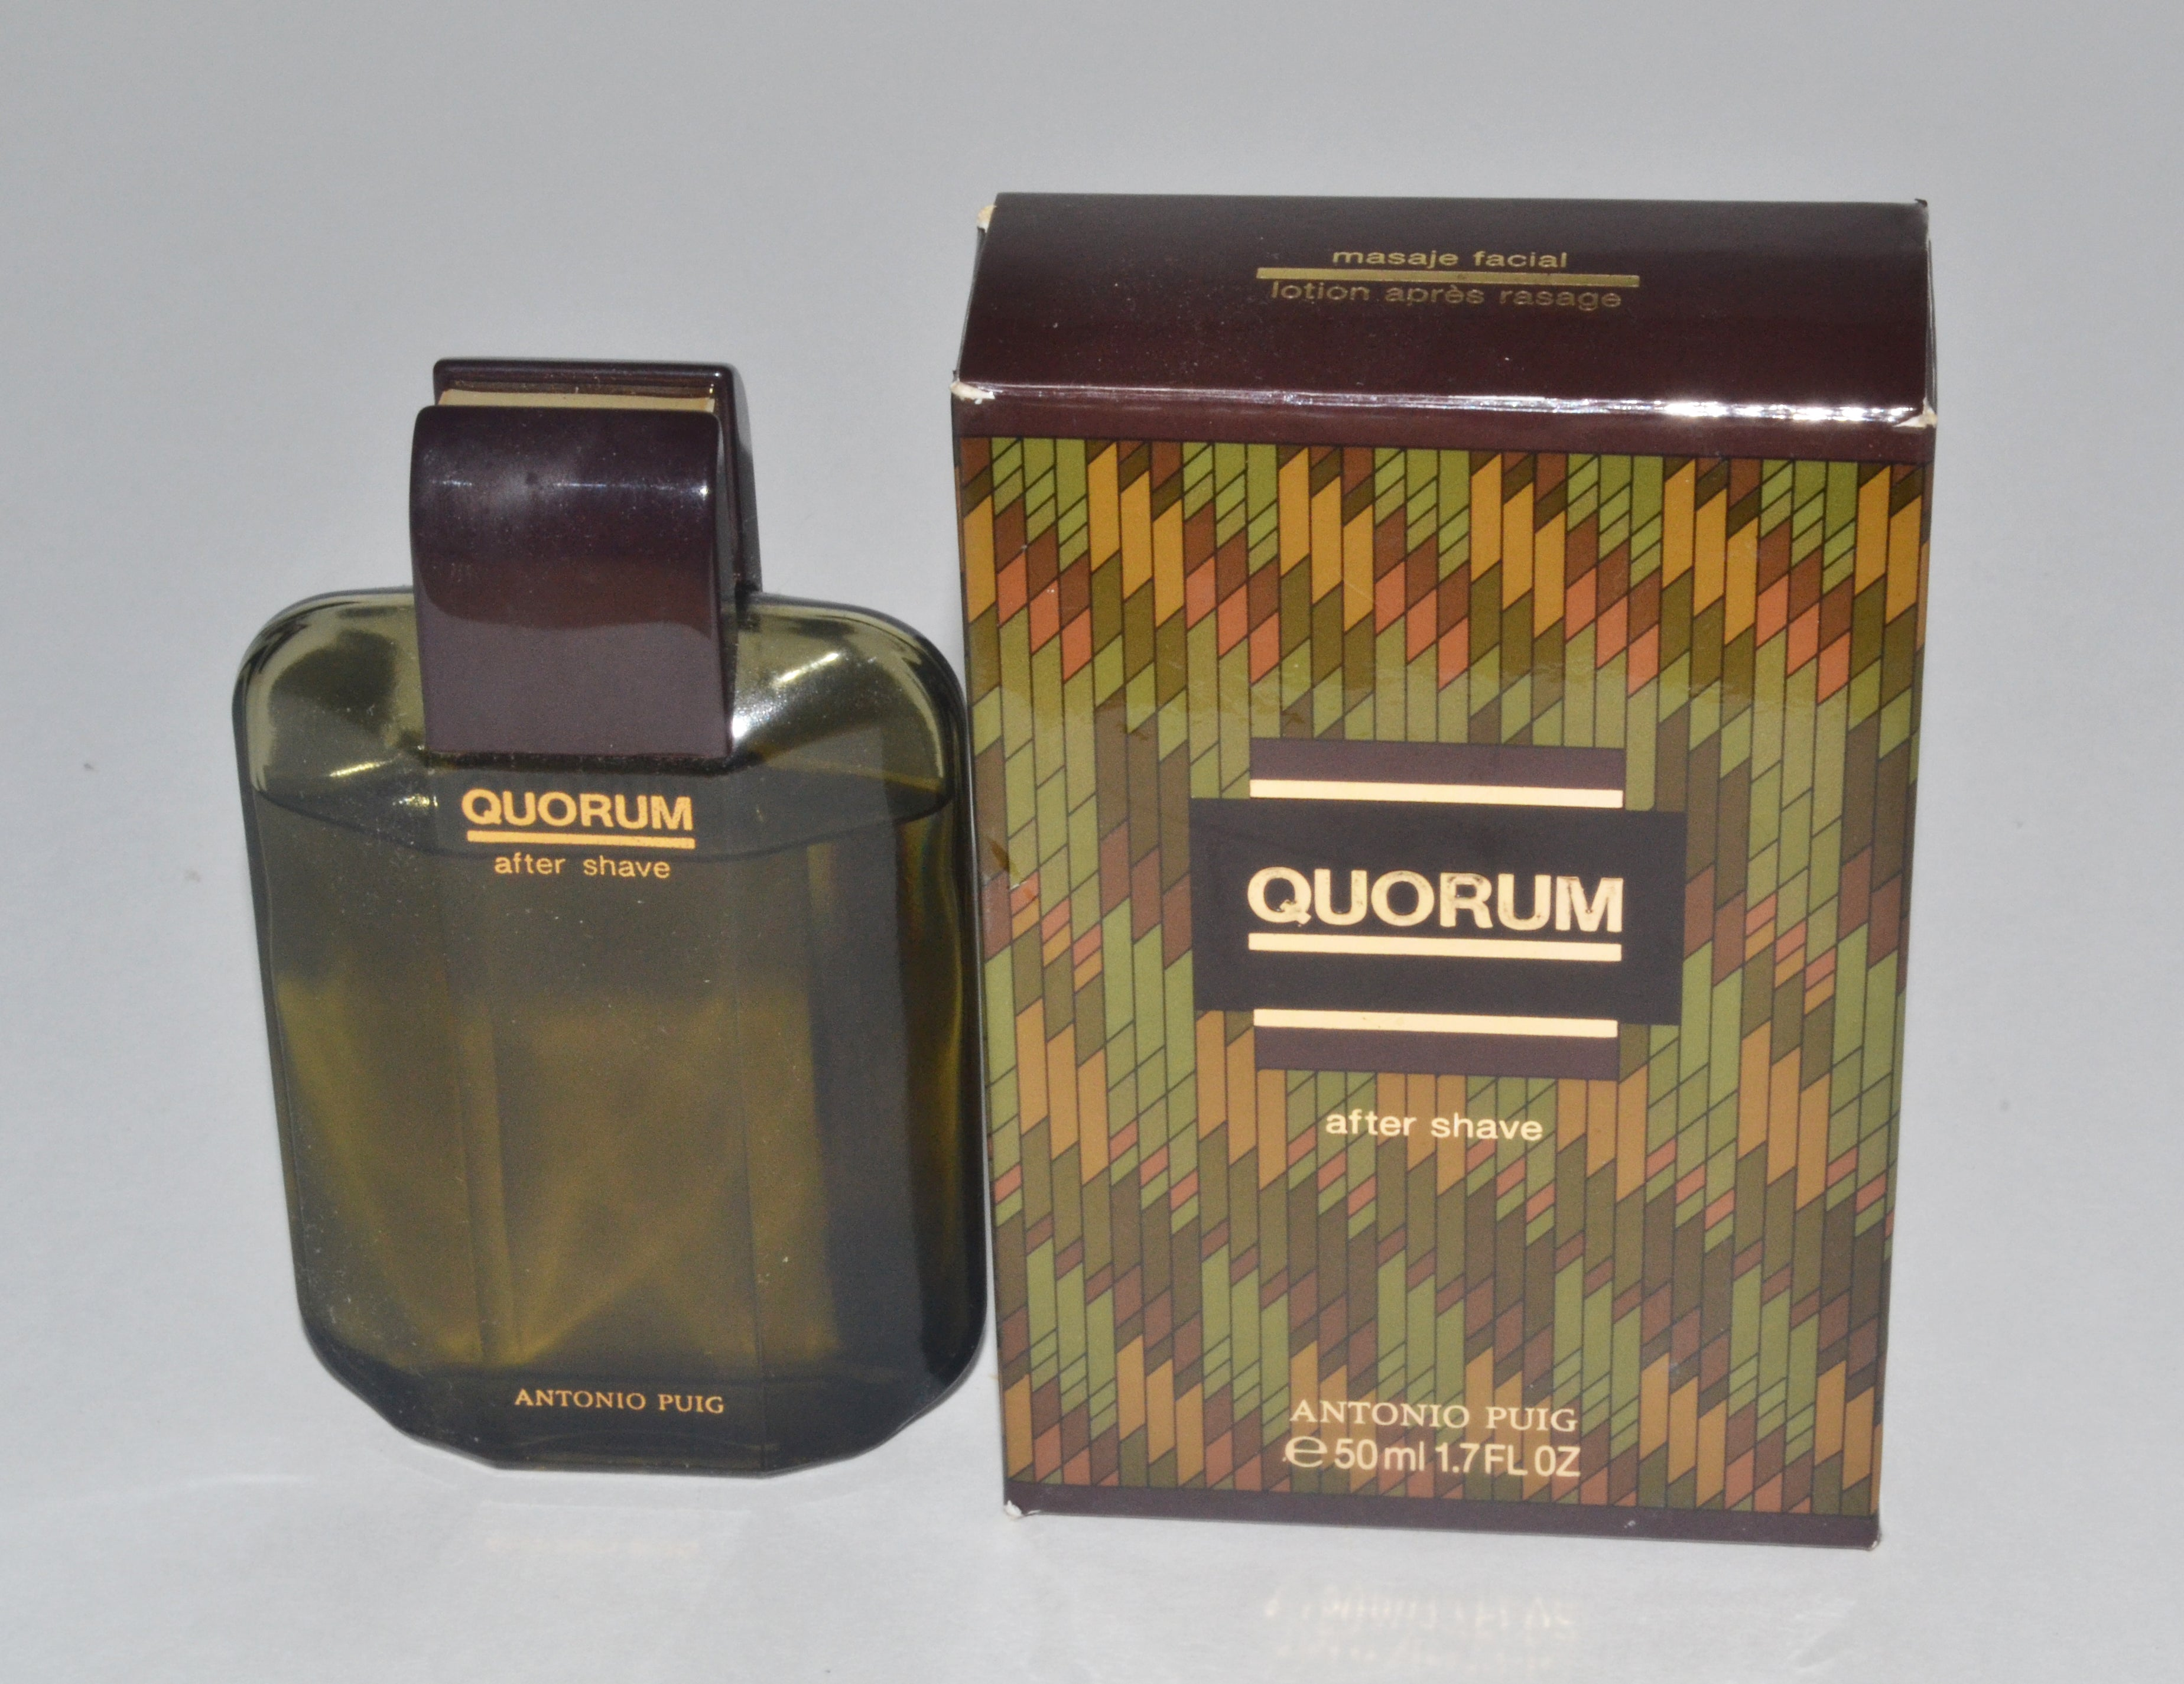 Vintage Quorum After Shave By Antonio Puig Circa 1993